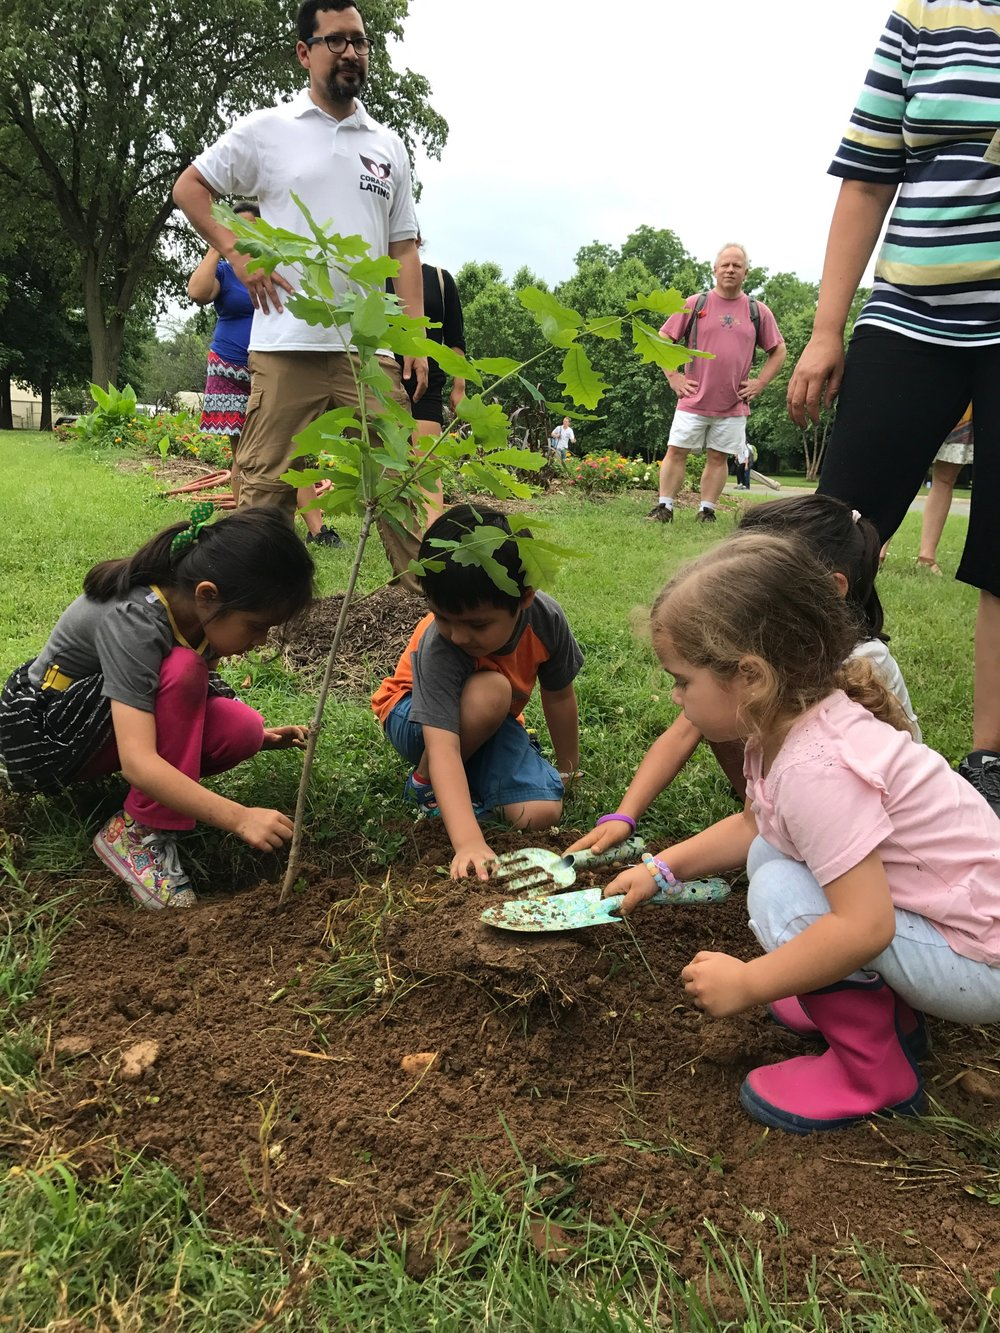 Kids helped plant a white oak tree in the name of conservation!